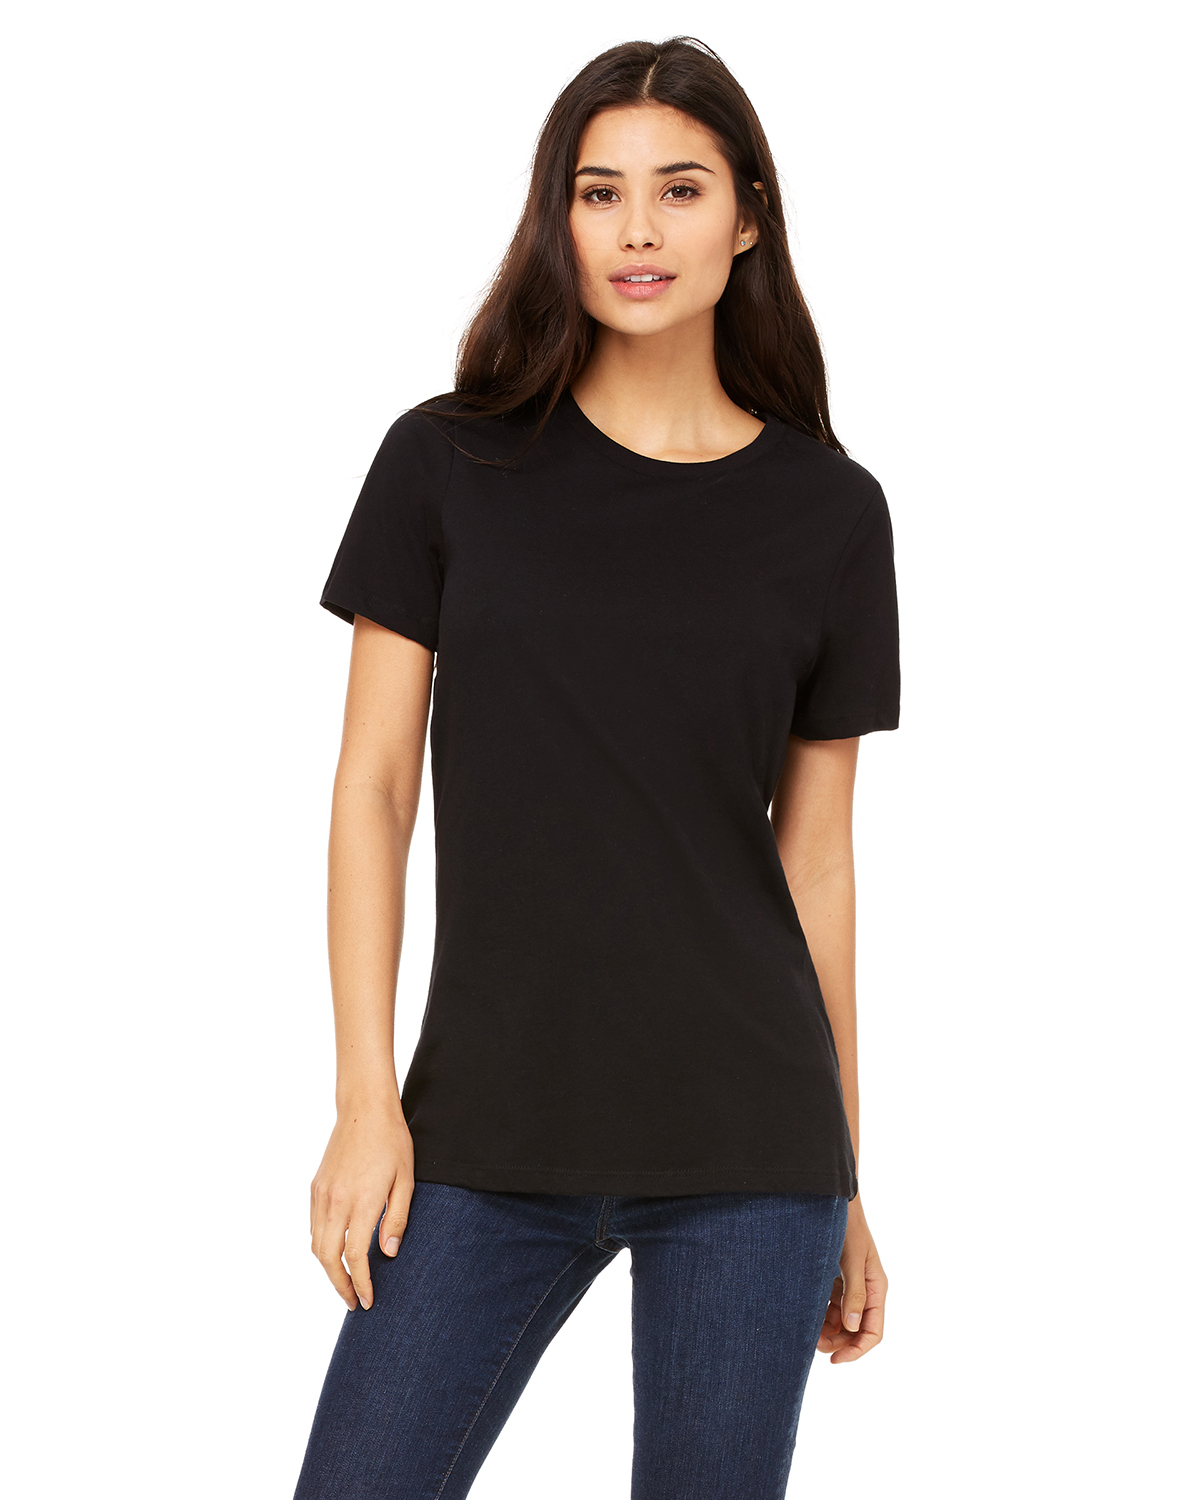 Bella 6400 - Missy Short Sleeve Crew Neck T-Shirt